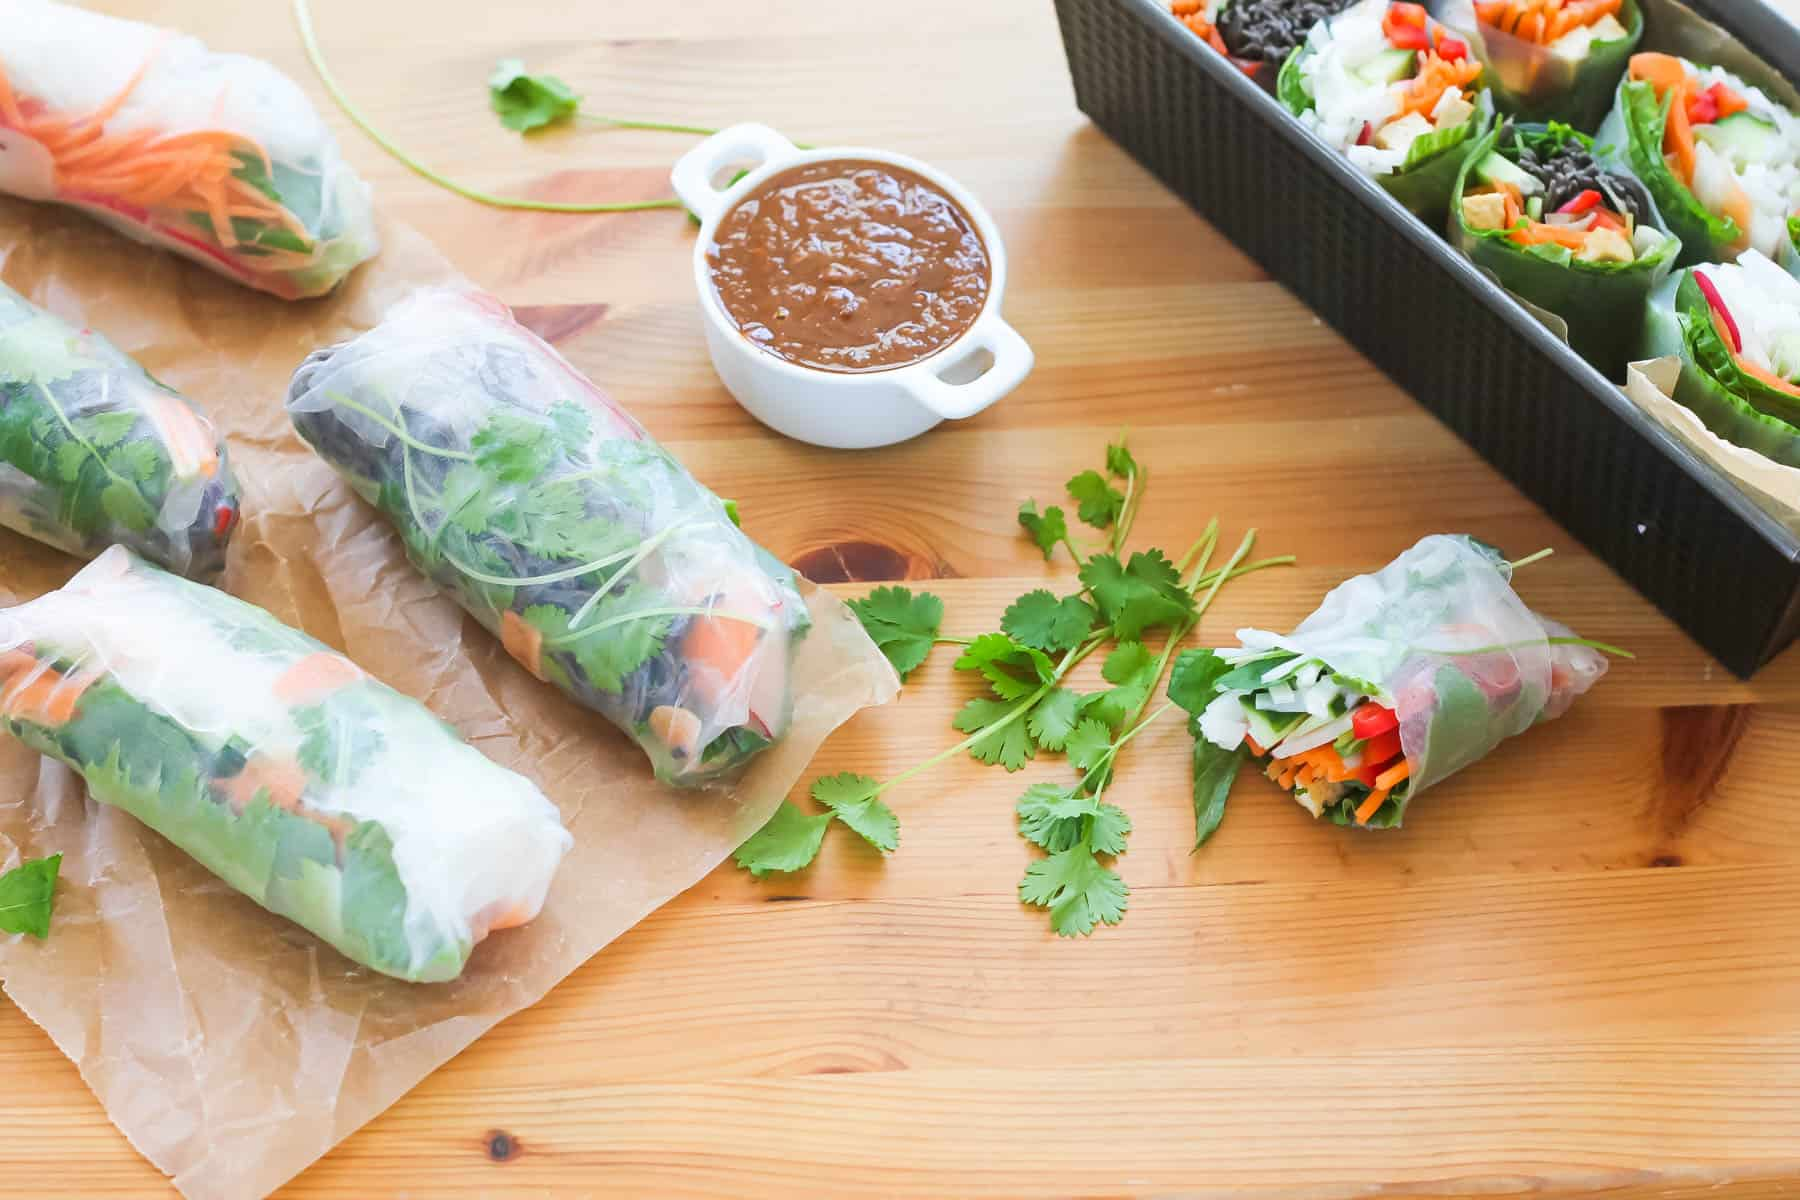 vegetarian rice paper rolls on a wooden background with a white pot of dipping sauce to the side